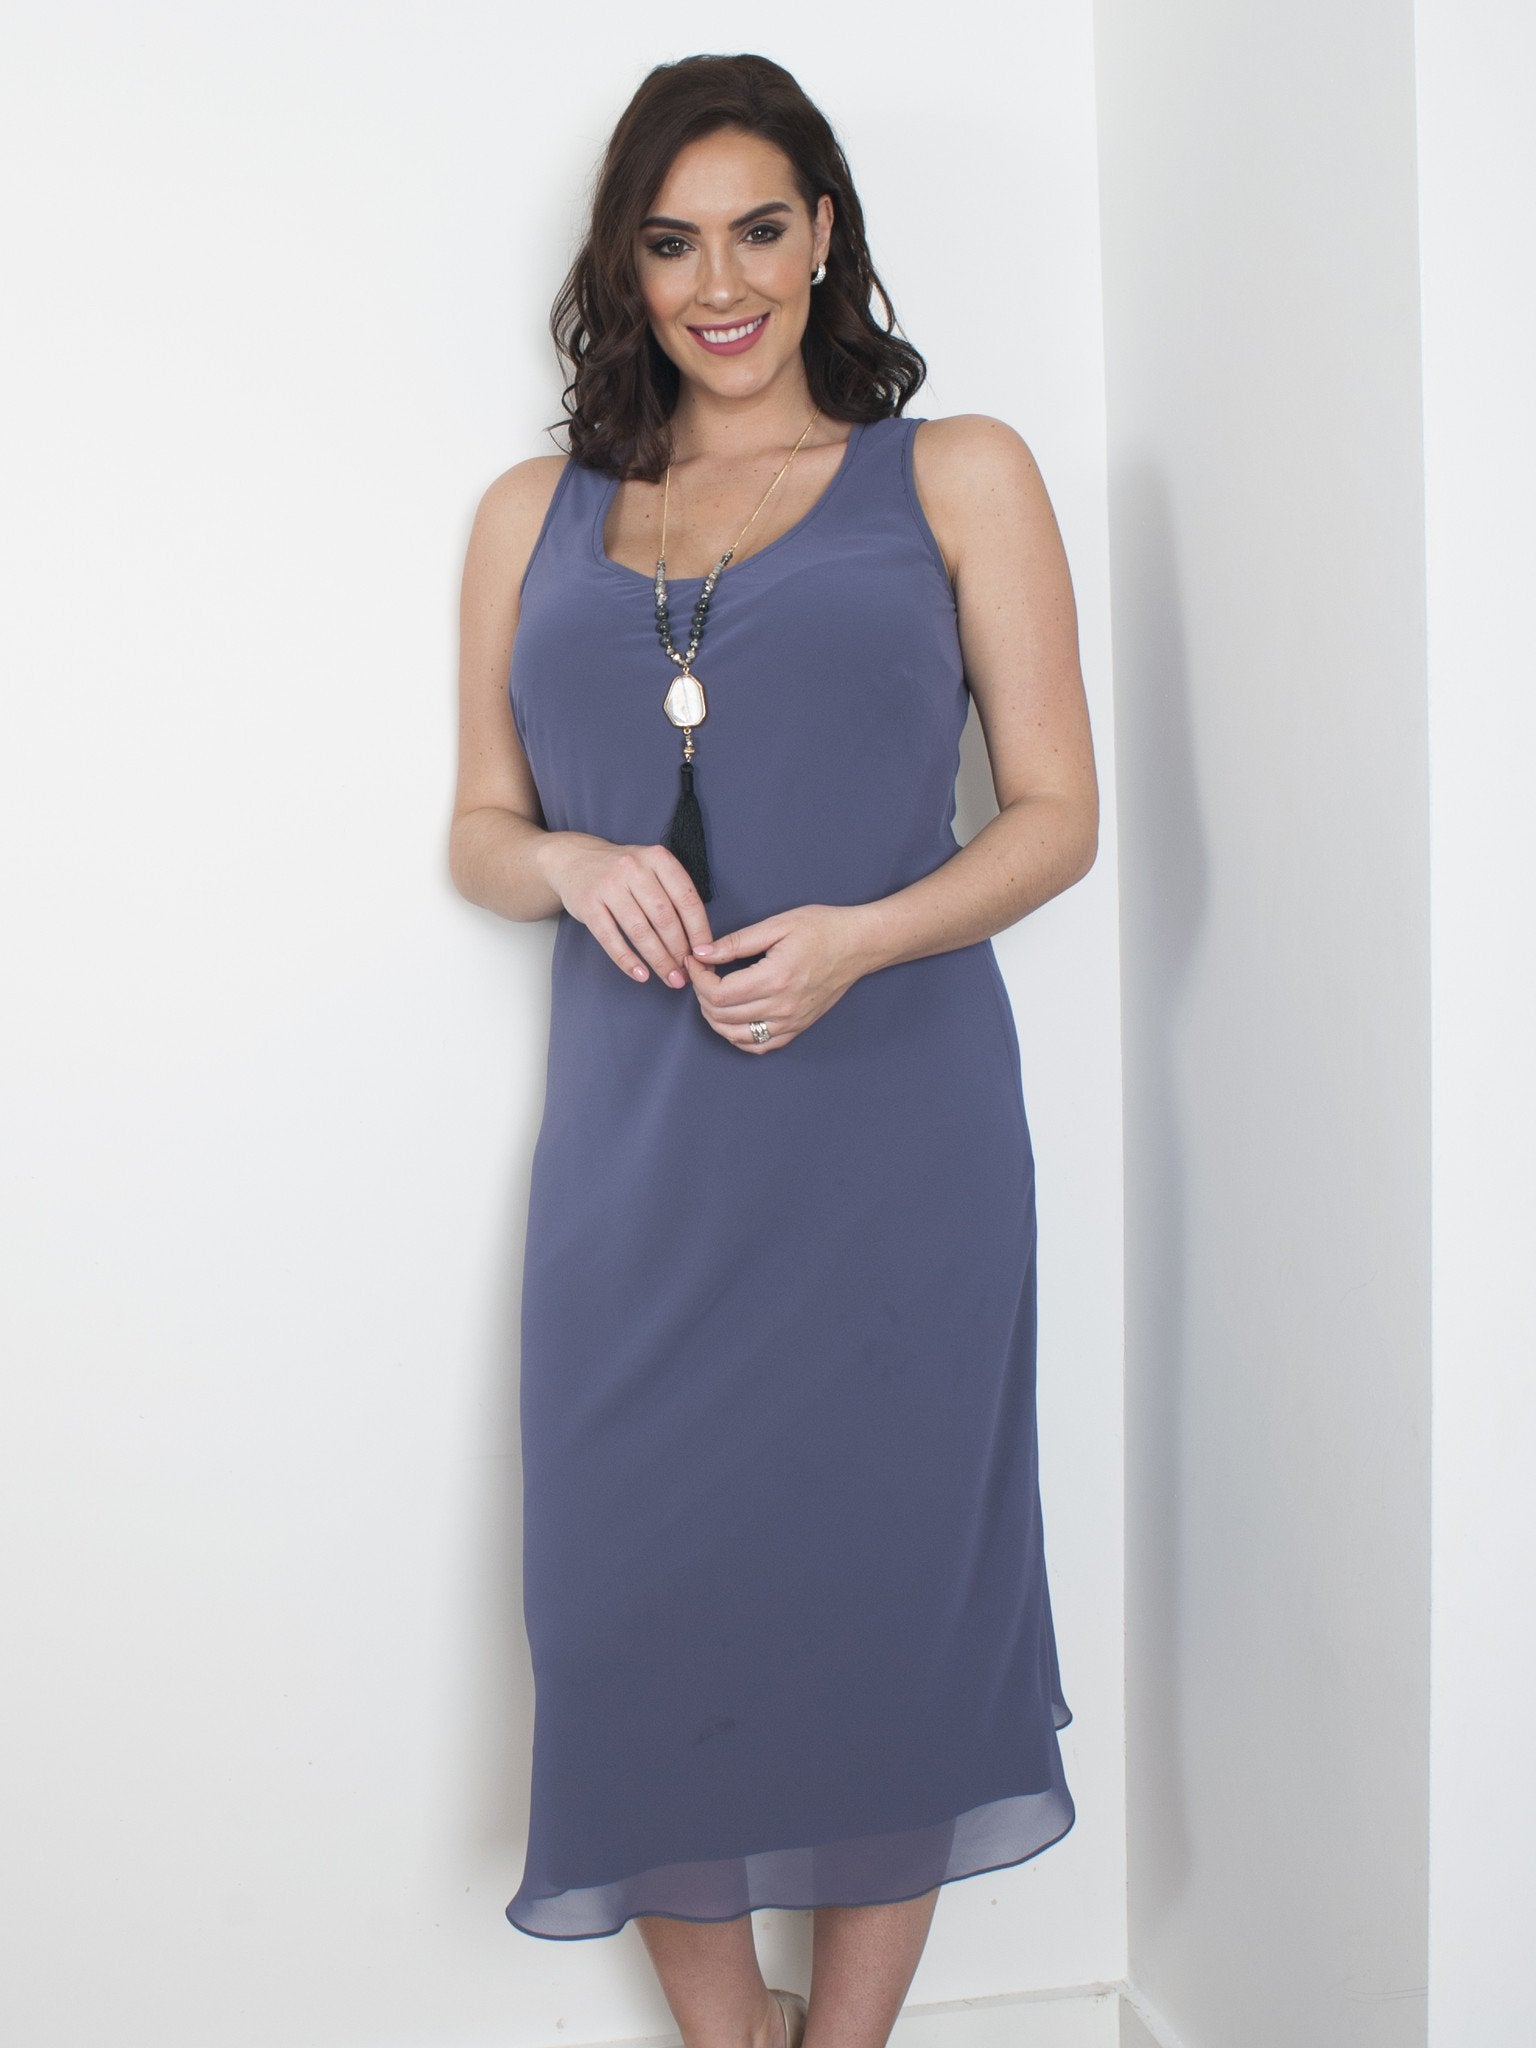 Chesca Direct Lavender Chiffon Dress -  Pre Order For Size 22-24 & Size 12 End of October